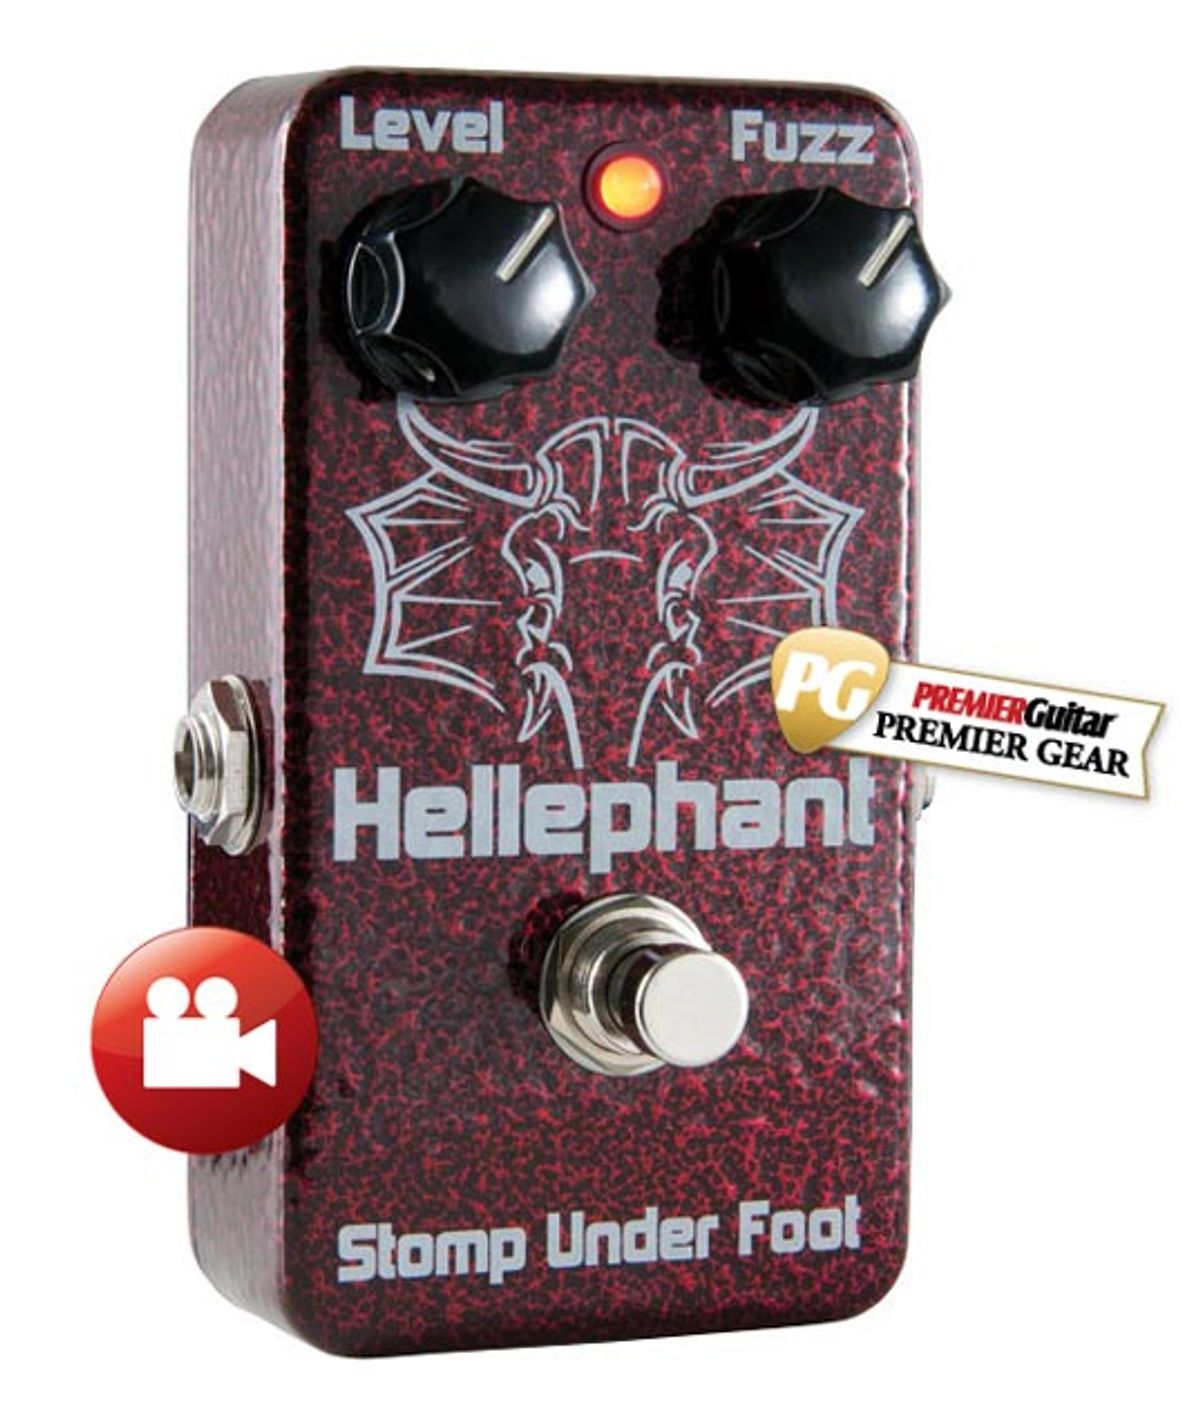 Stomp Under Foot Hellephant Review